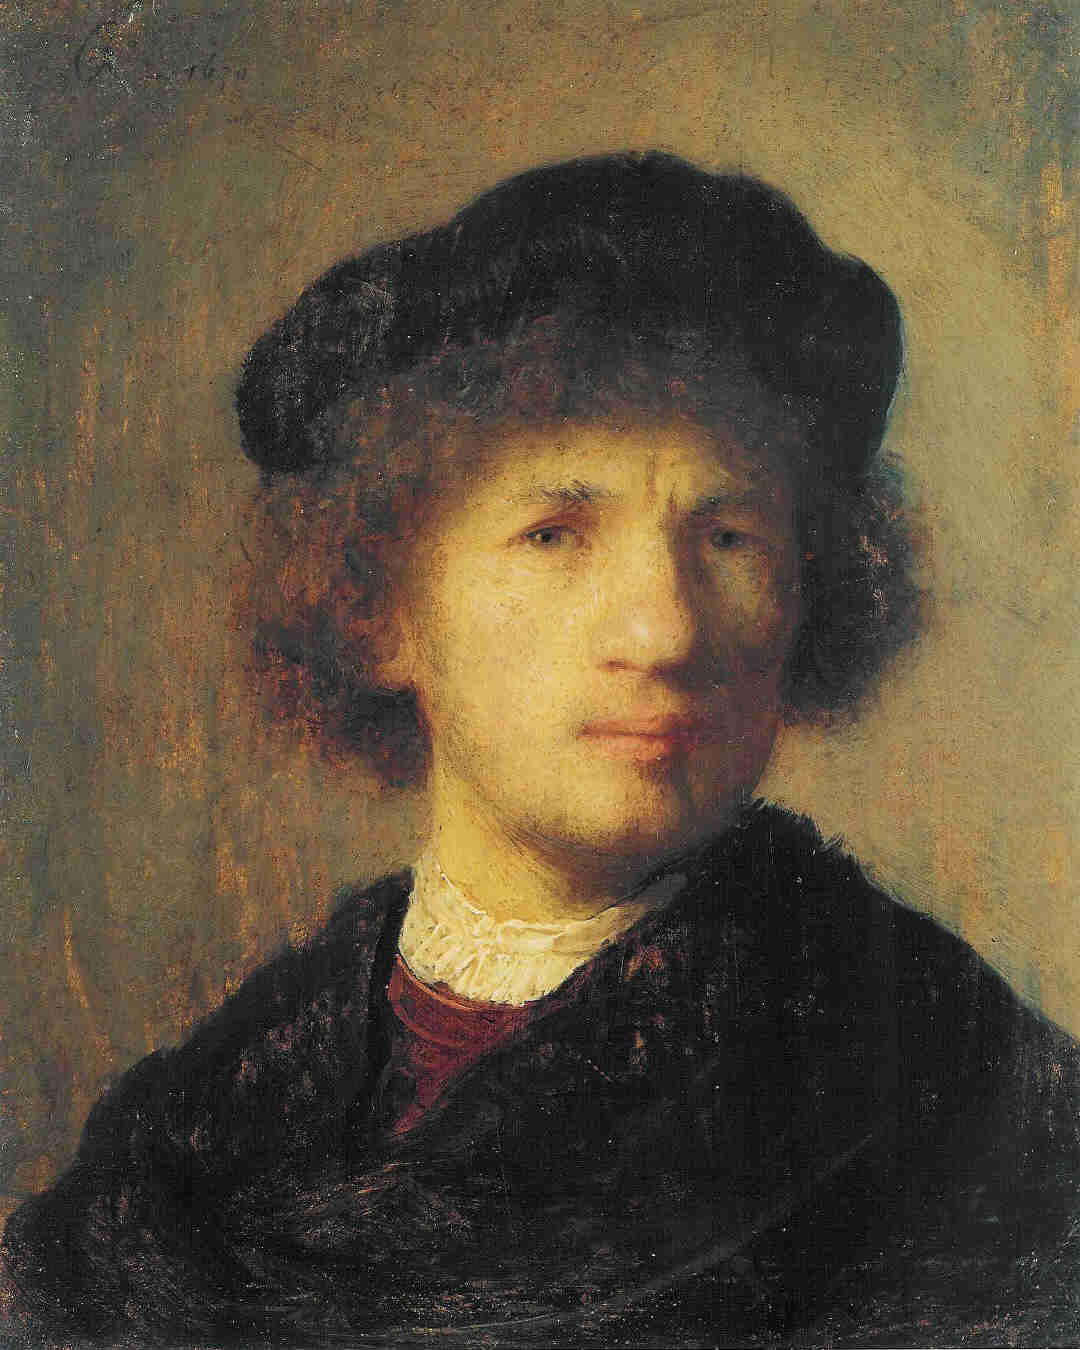 Rembrandt, Self portrait, 1630, Stockholm, Nationalmuseum